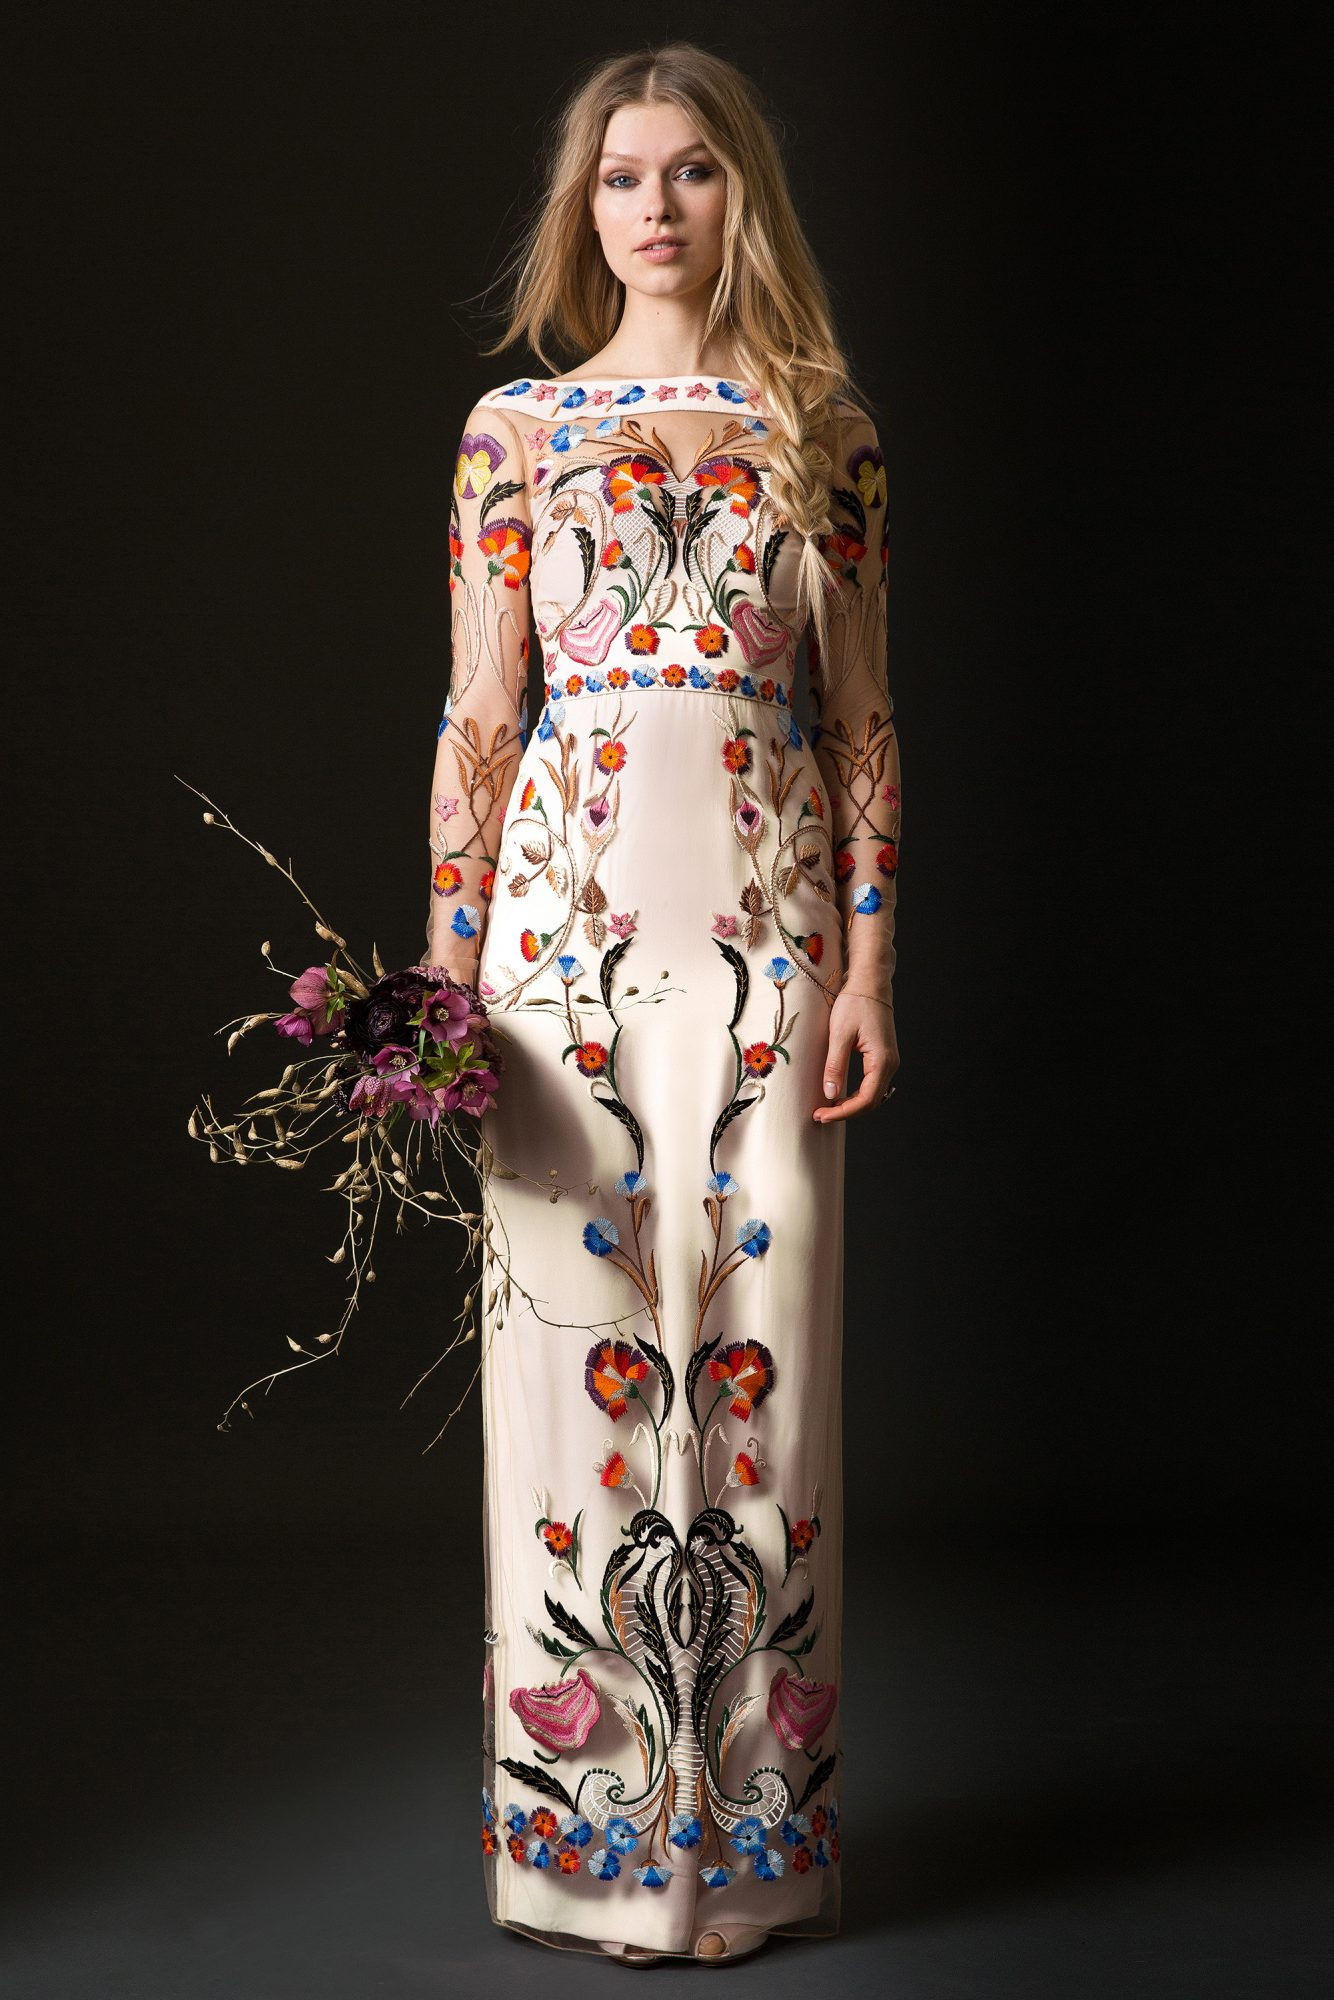 temperley wedding dress spring 2019 sheath with long sleeves and colorful floral applique